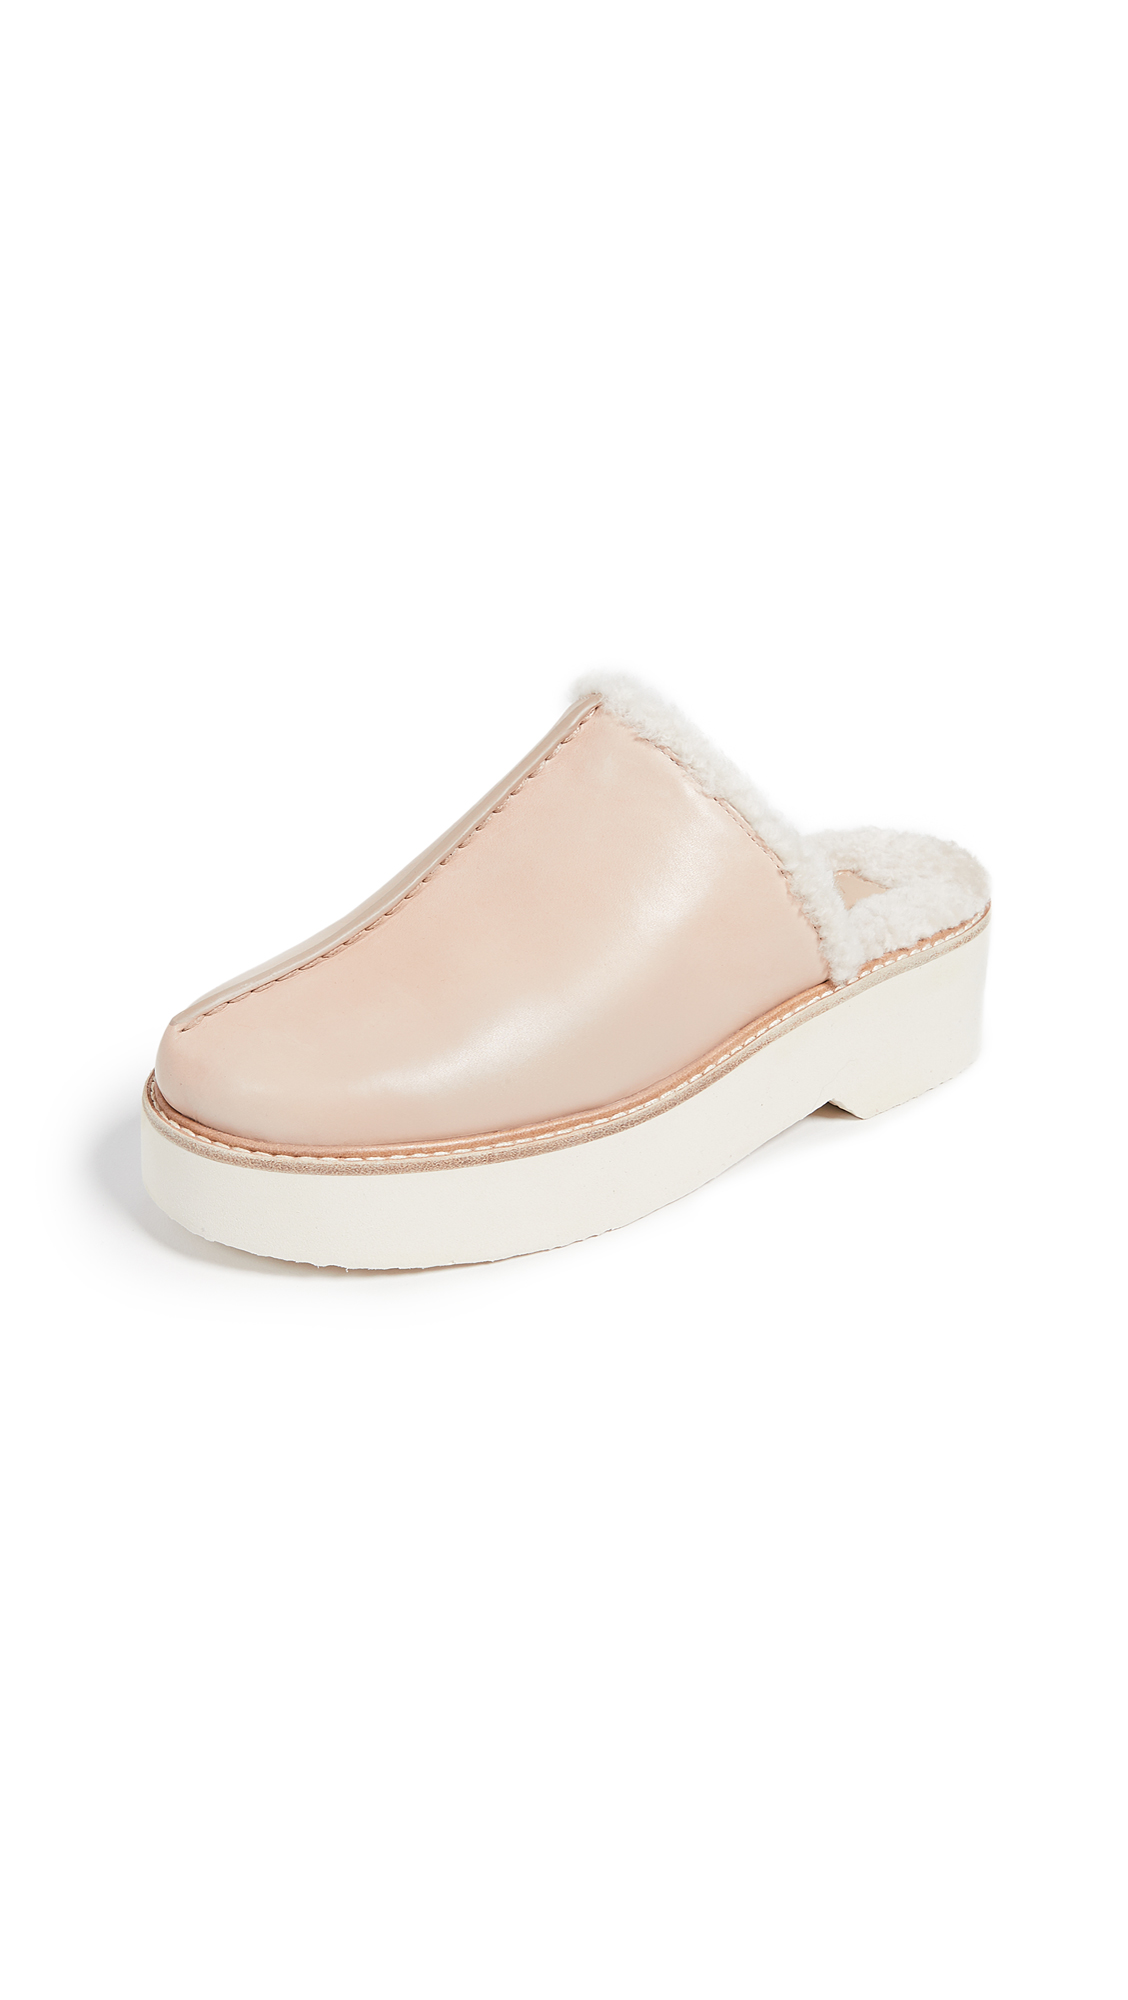 Adler Genuine Shearling Lined Platform Mule in Putty